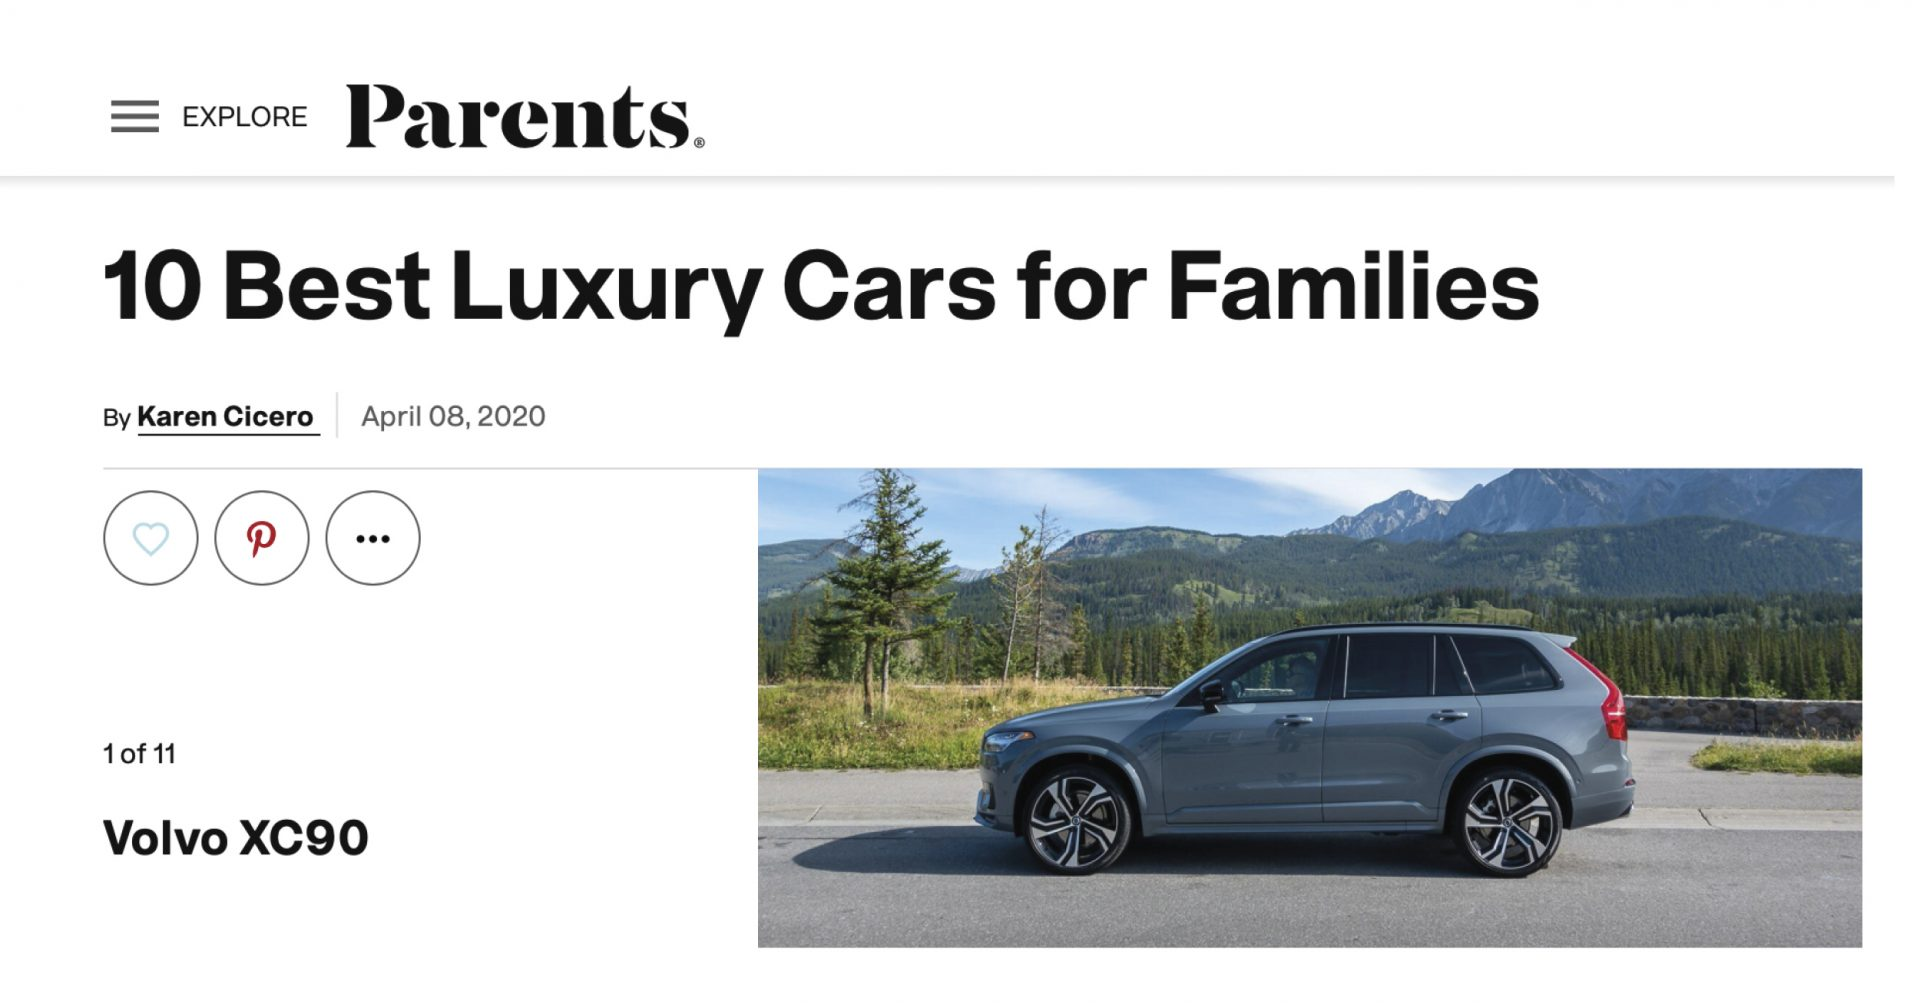 Parents_Best_LuxuryCar_Family_Volvo_XC90